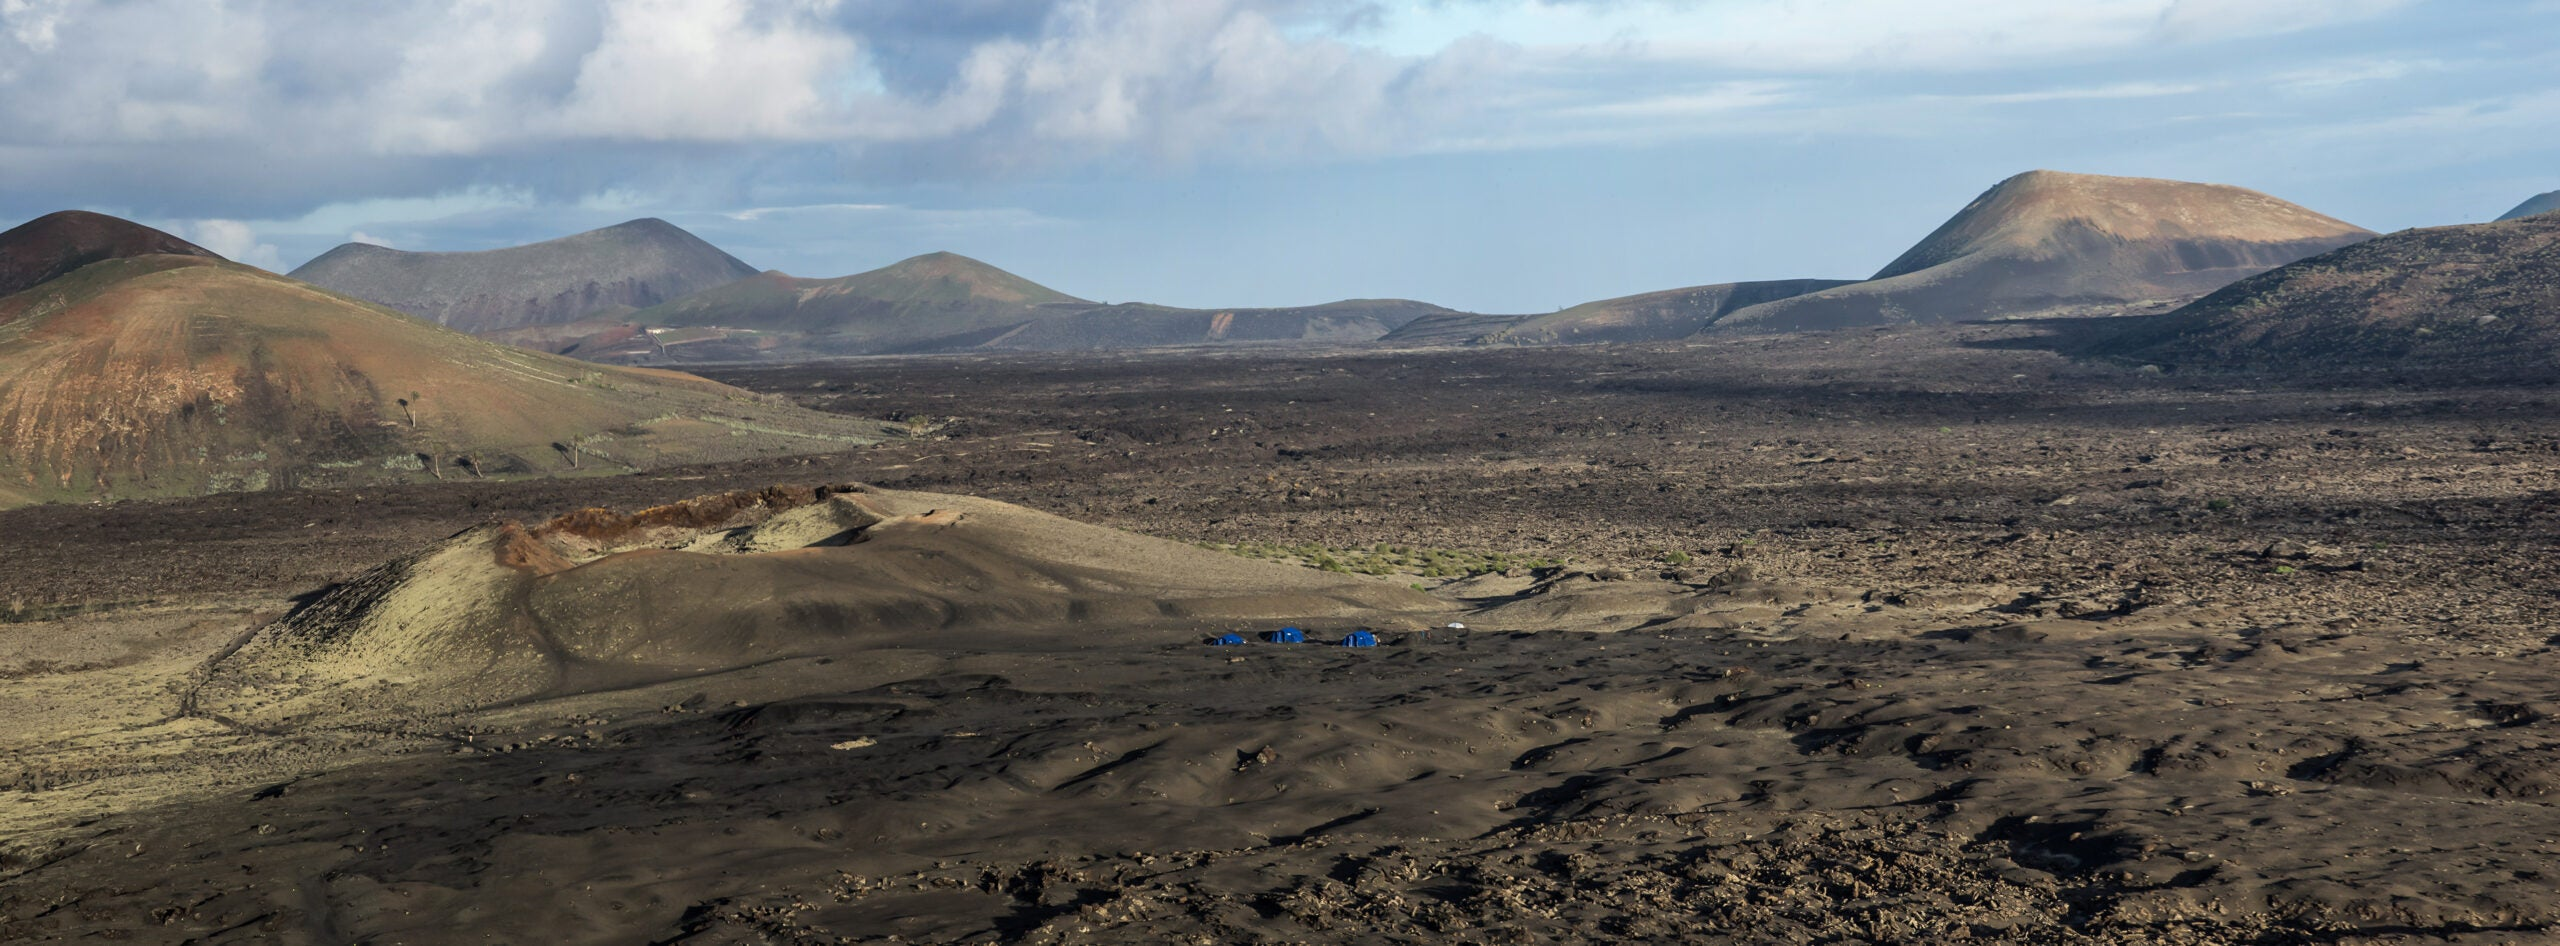 barren landscape of lanzarote in the canary islands